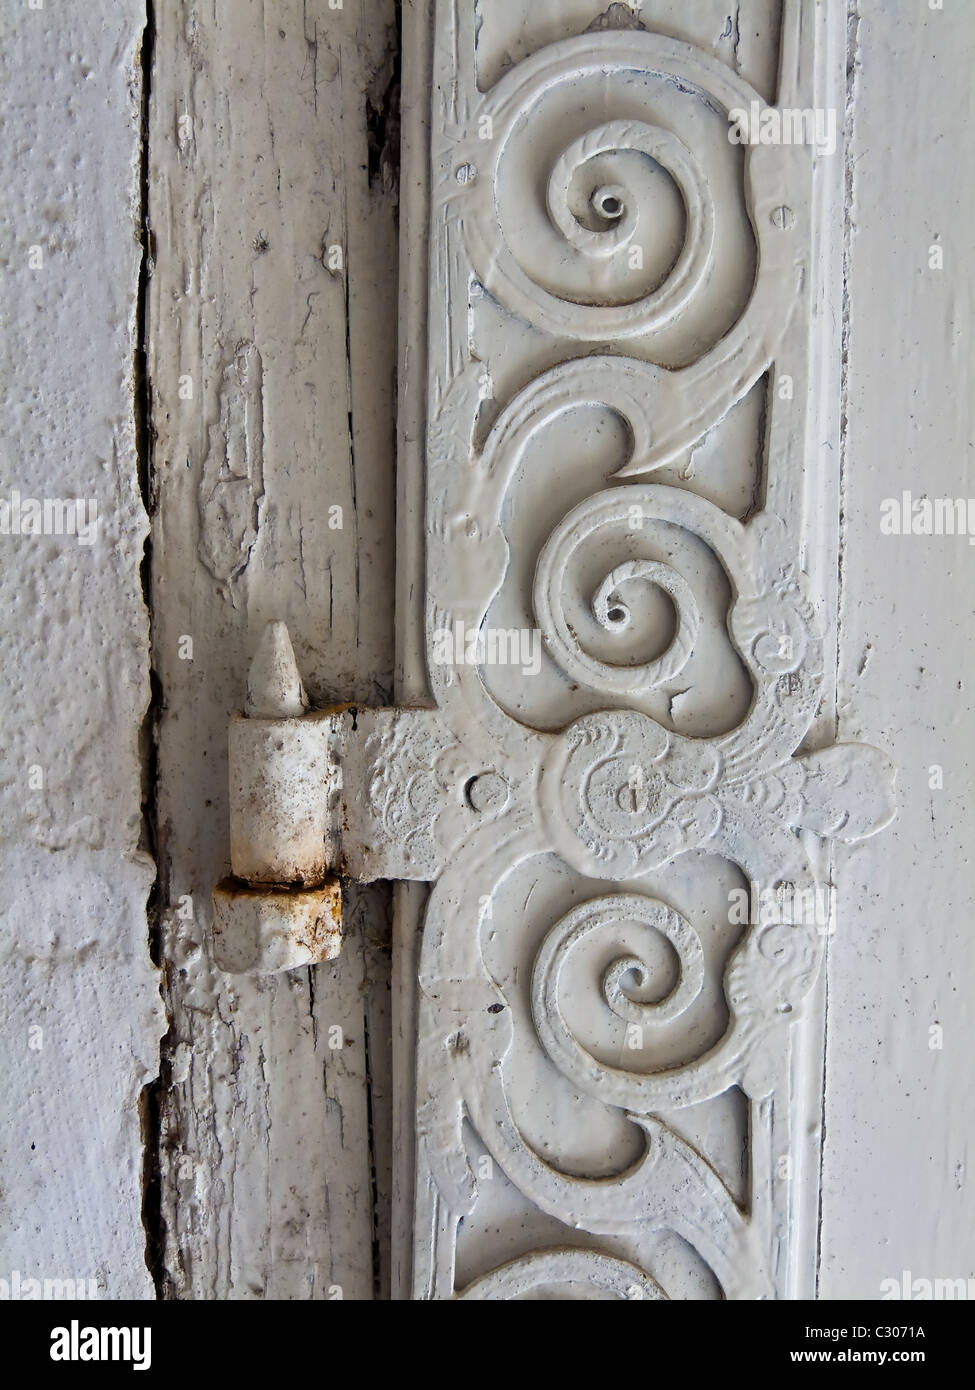 Hinge of an old door of a house - Stock Image